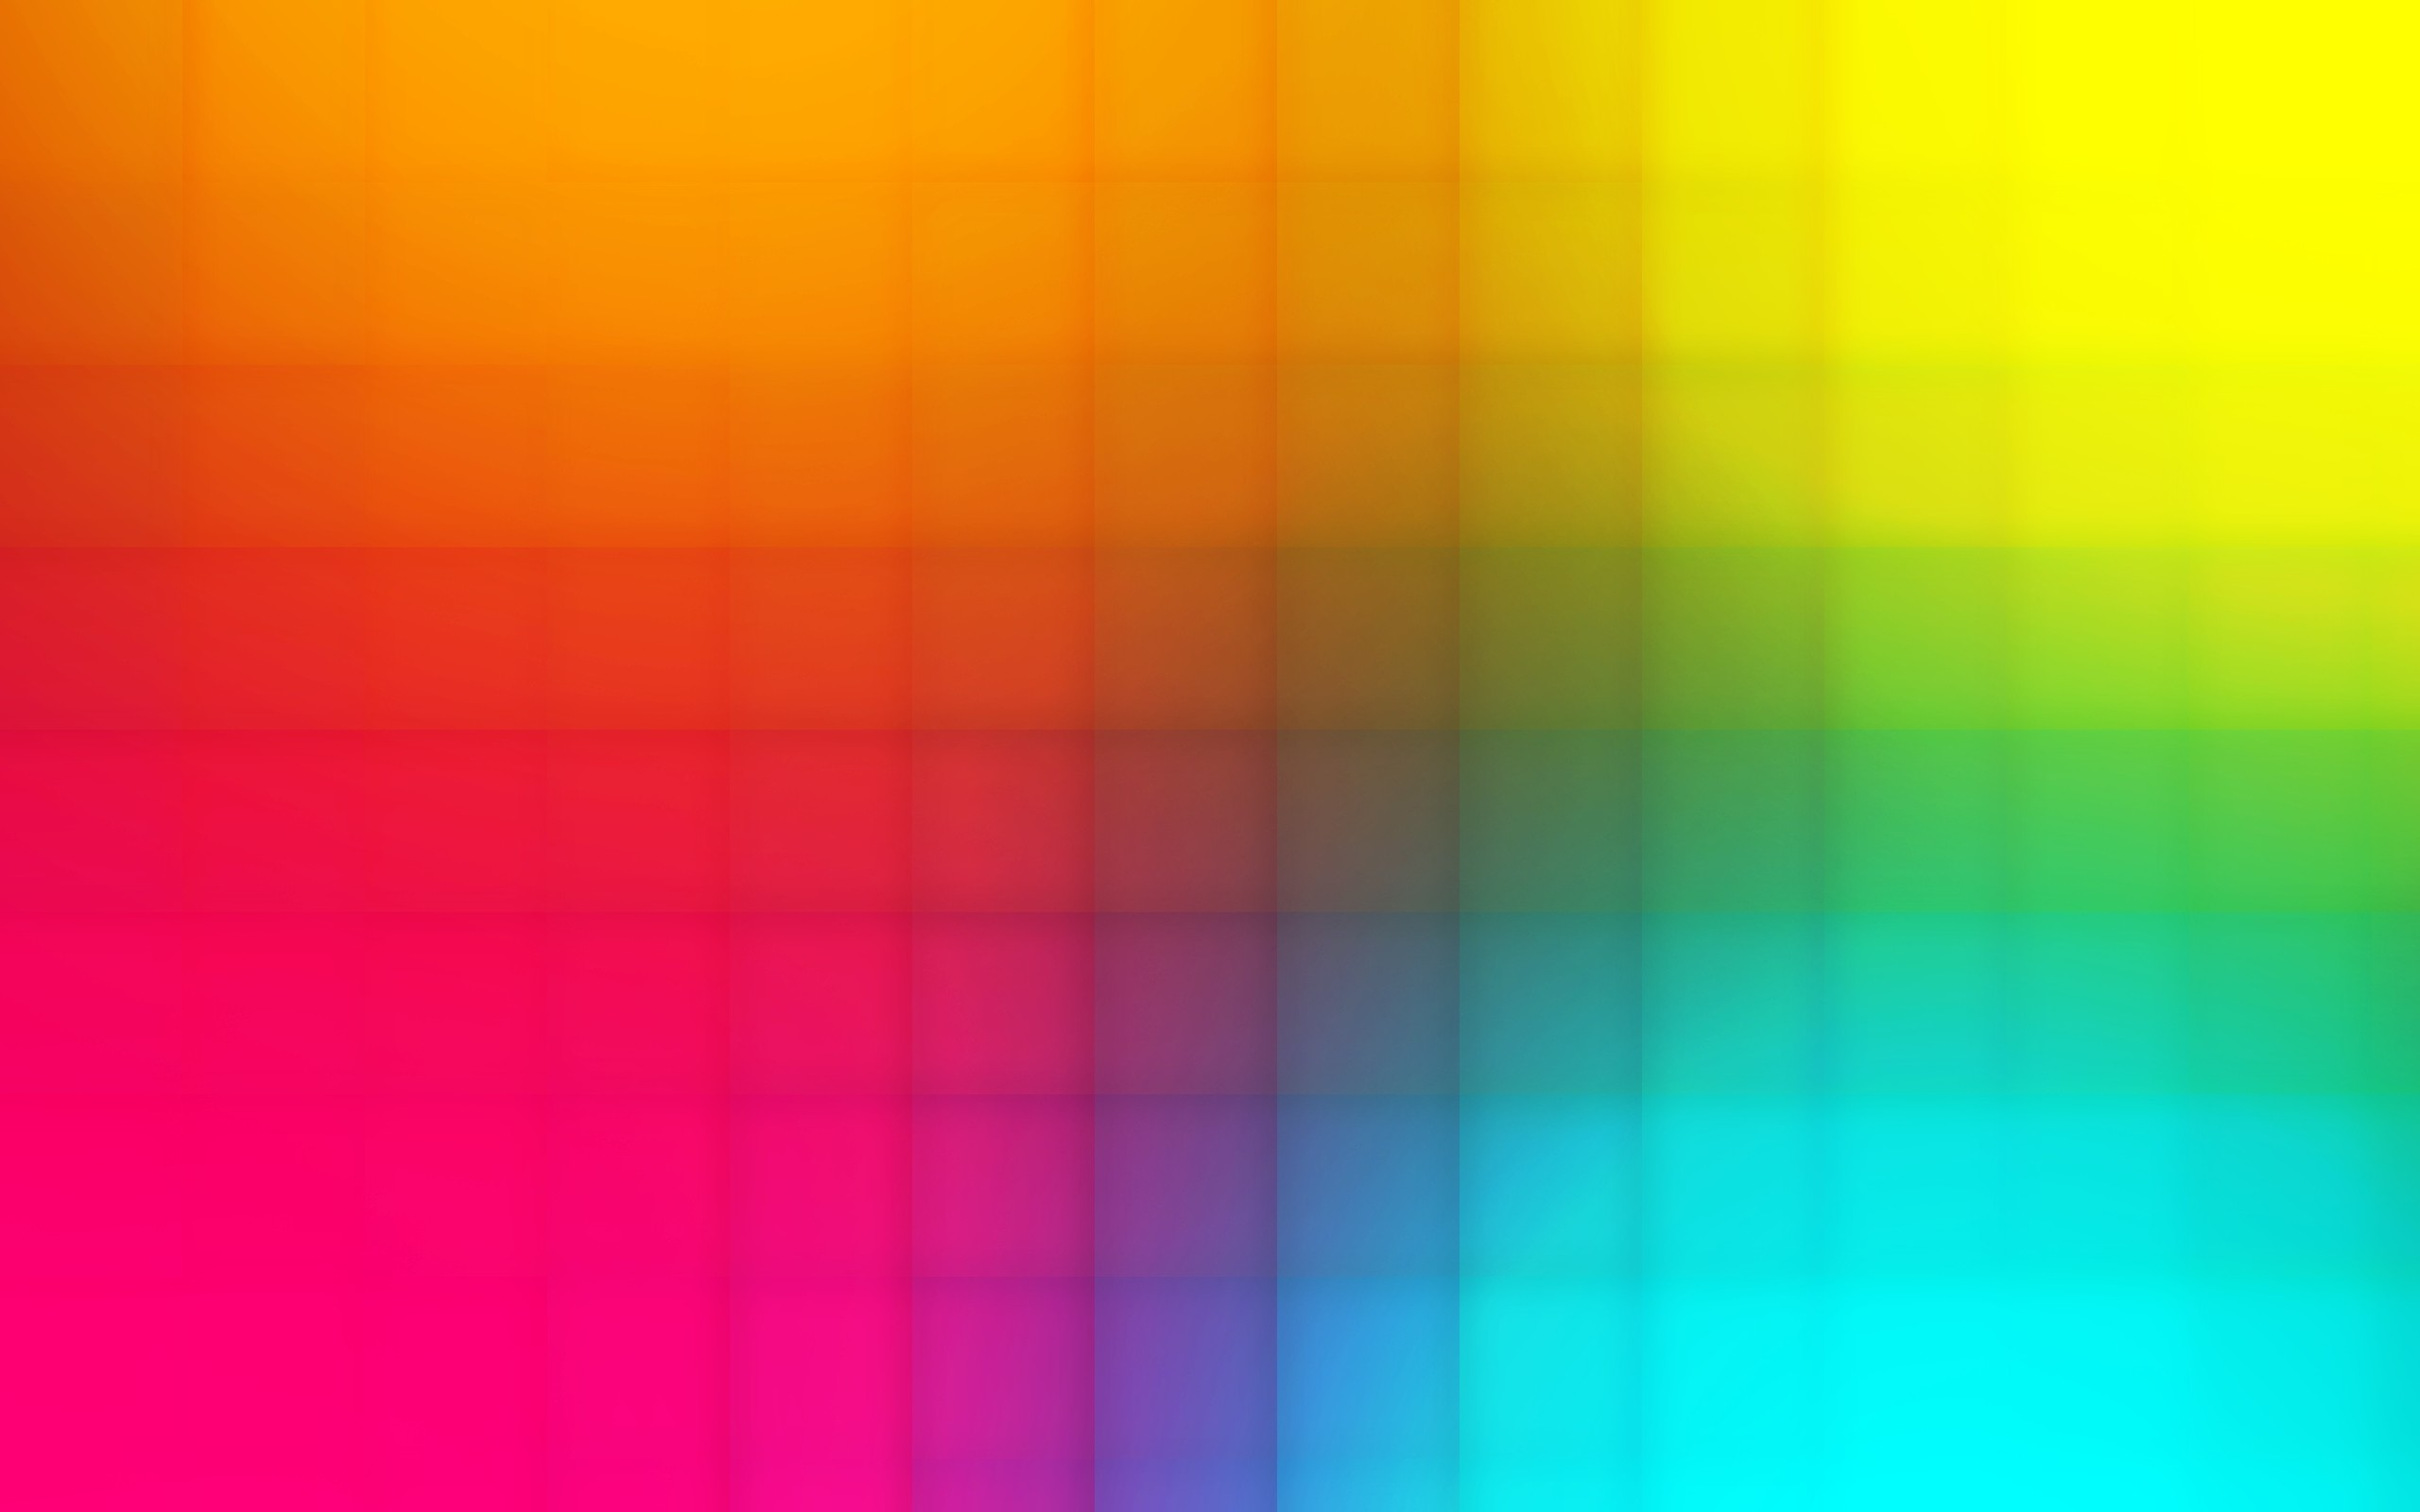 Wallpaper Squares, Background, Multi-colored, Bright, Diced